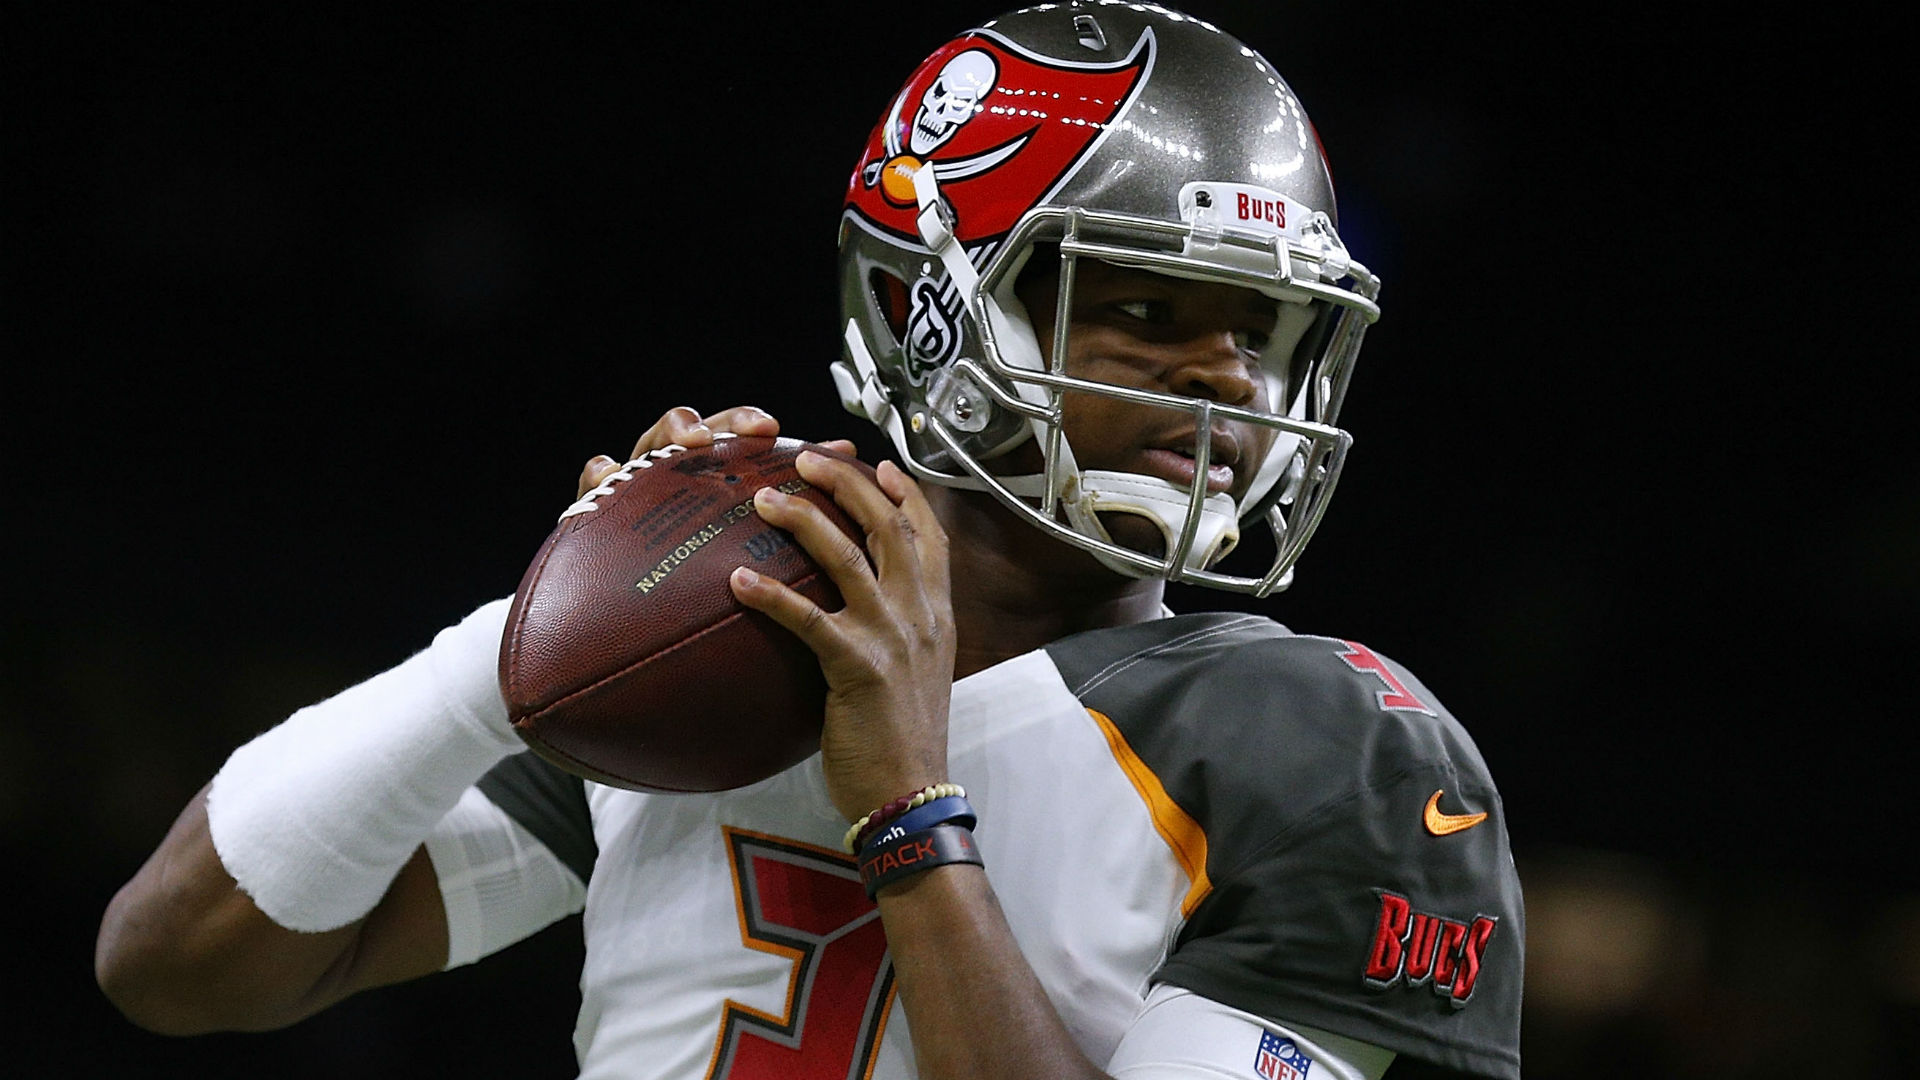 Jameis Winston out for several weeks, say Buccaneers